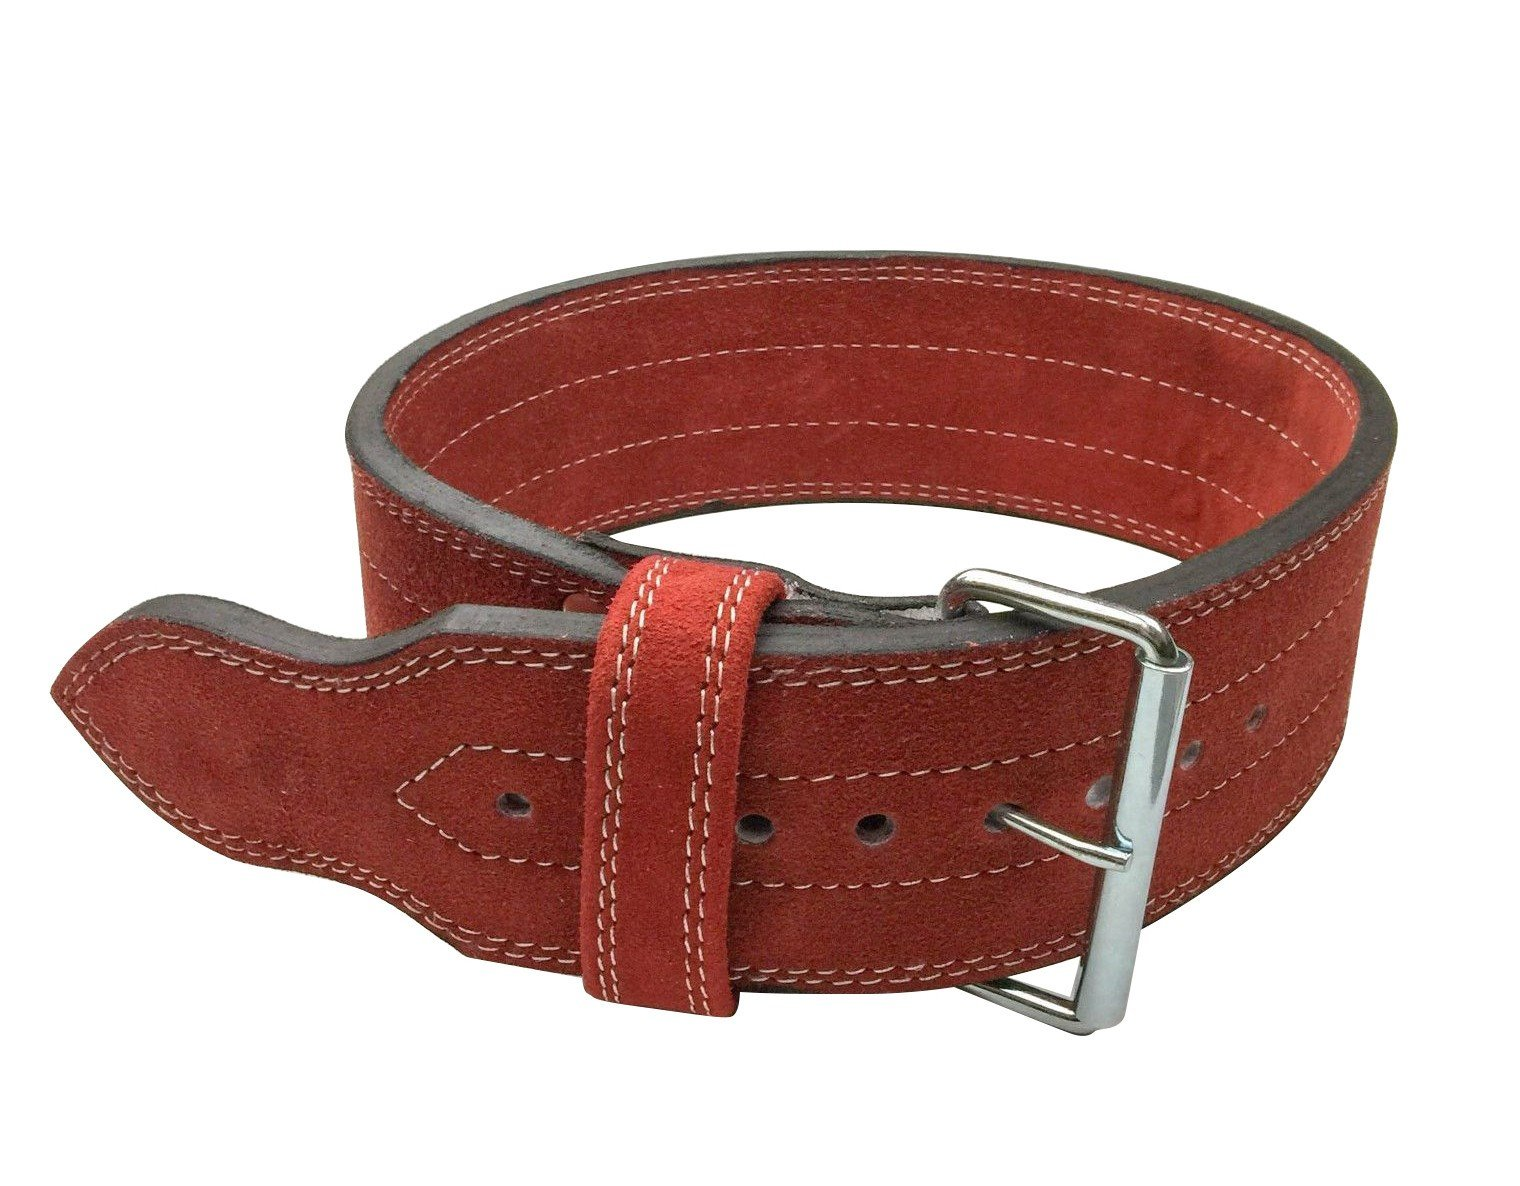 Flexz Fitness Single Prong Closure Powerlifting and Weightlifting Belt, 10mm, Red, Size Medium